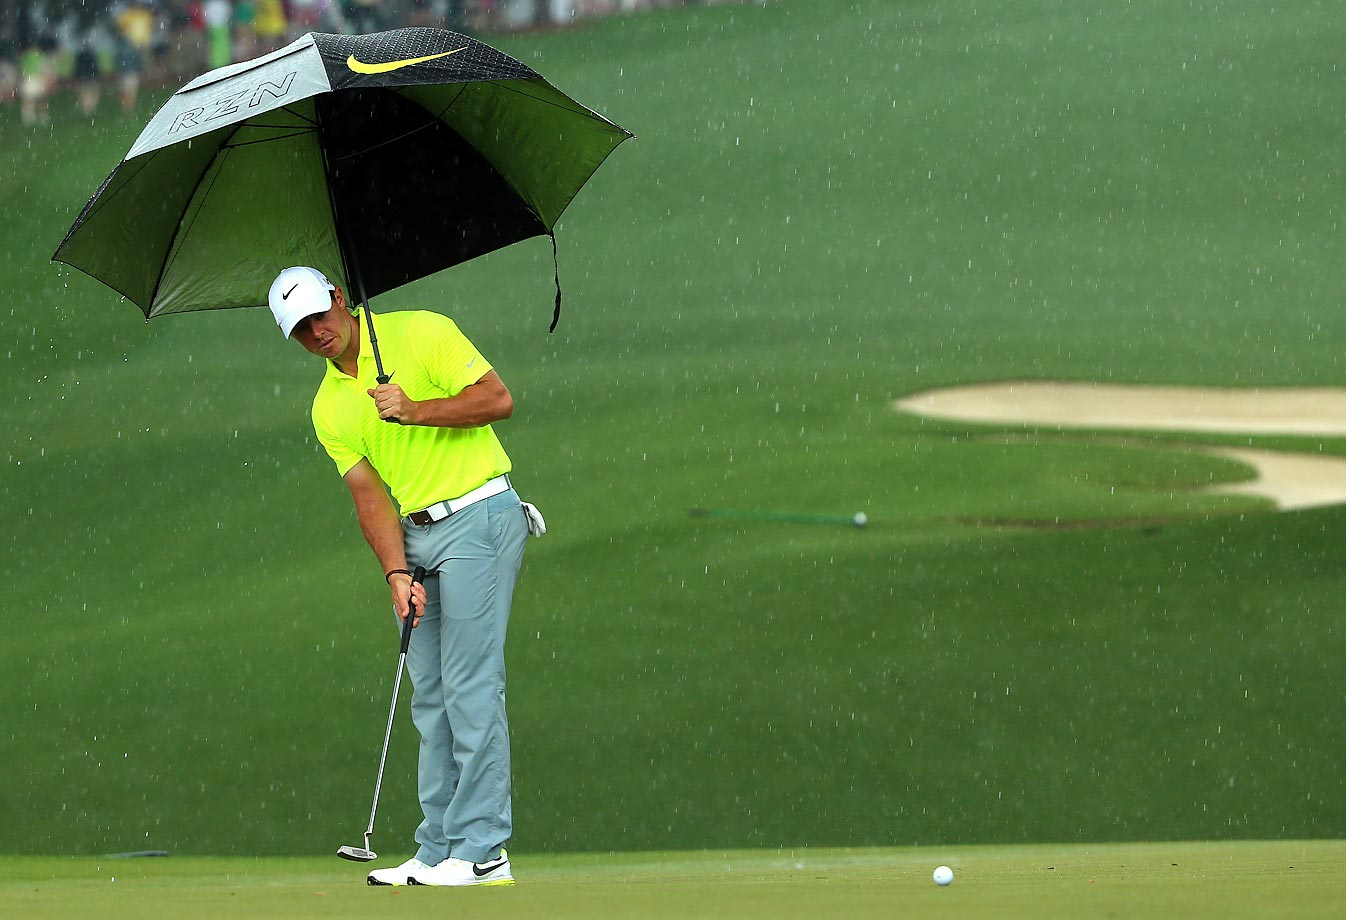 Rory McIlroy hits a putt in the rain during a practice round at the Masters.